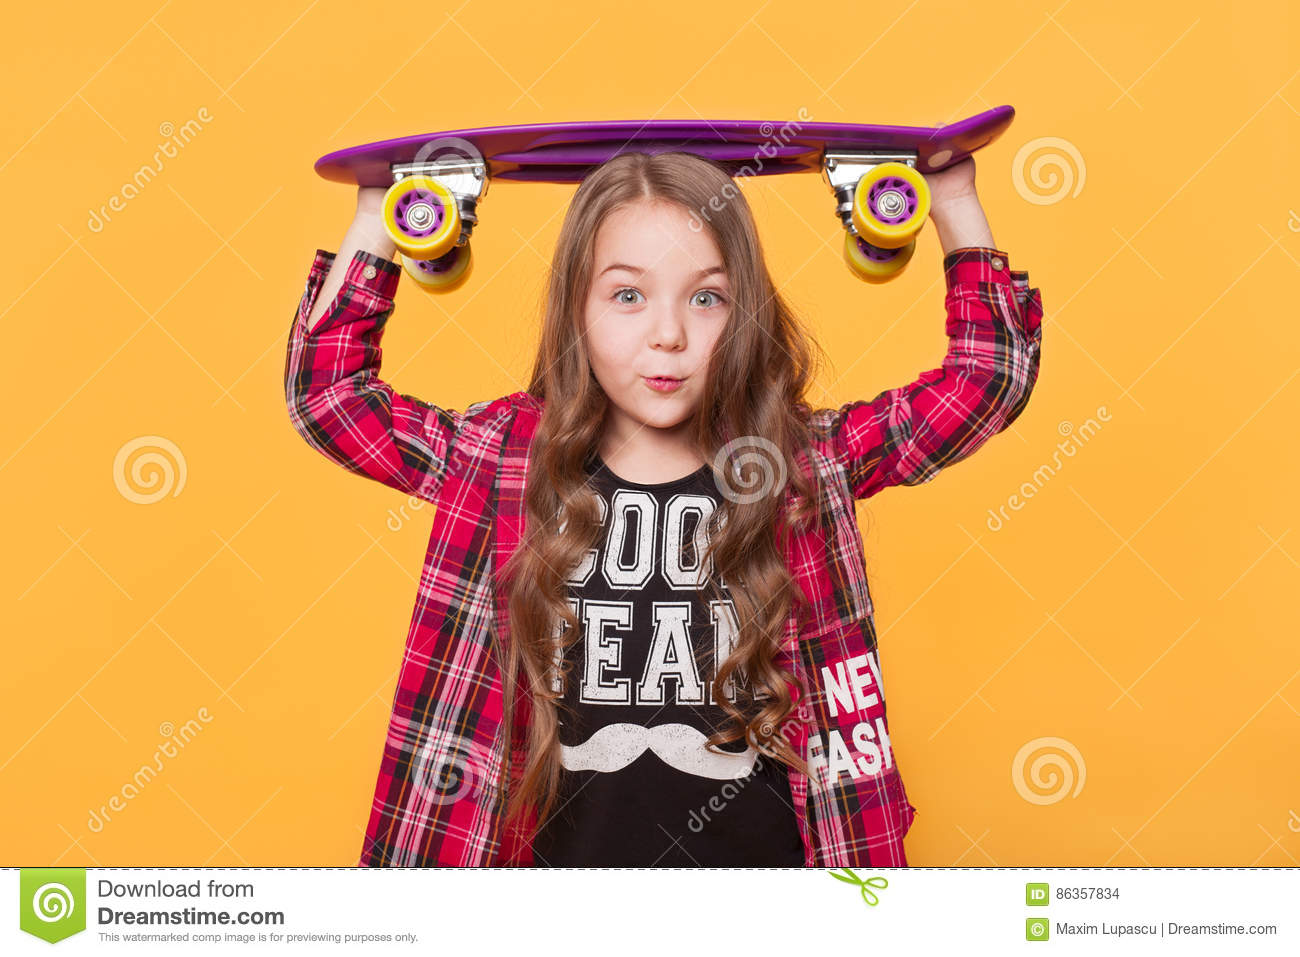 dd03e014a6f6 Portrait of a cute 6 year old girl wearing hipster casual clothes posing  with skateboard on head over bright yellow background.